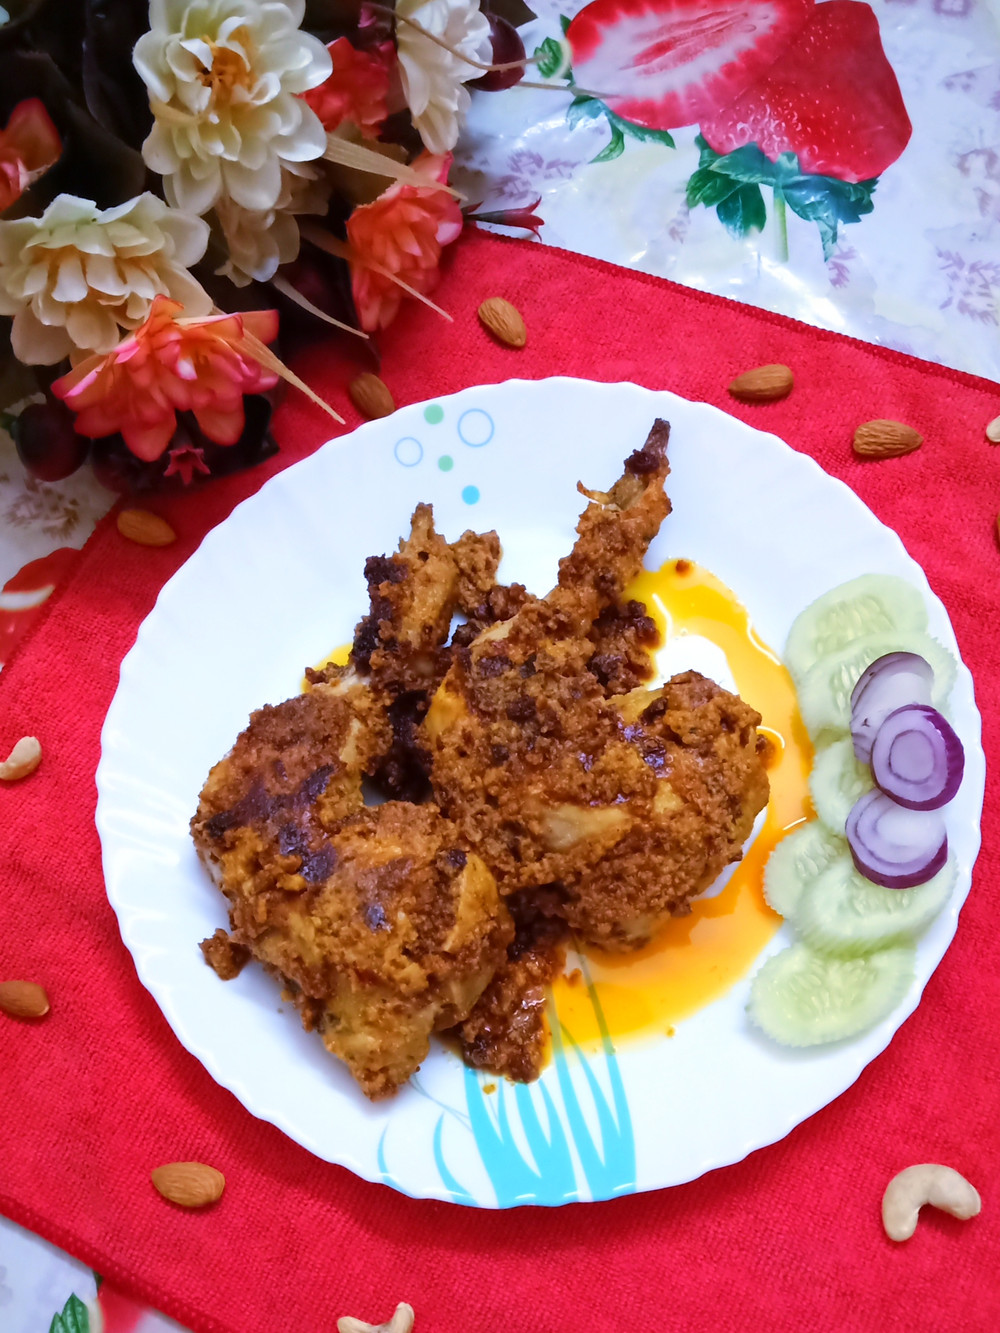 Traditionally a Mughlai dish, the Chicken Chaap would almost always need a full leg of chicken, which would include the thigh as well. Of course some place cut cost and use only the drumstick piece.